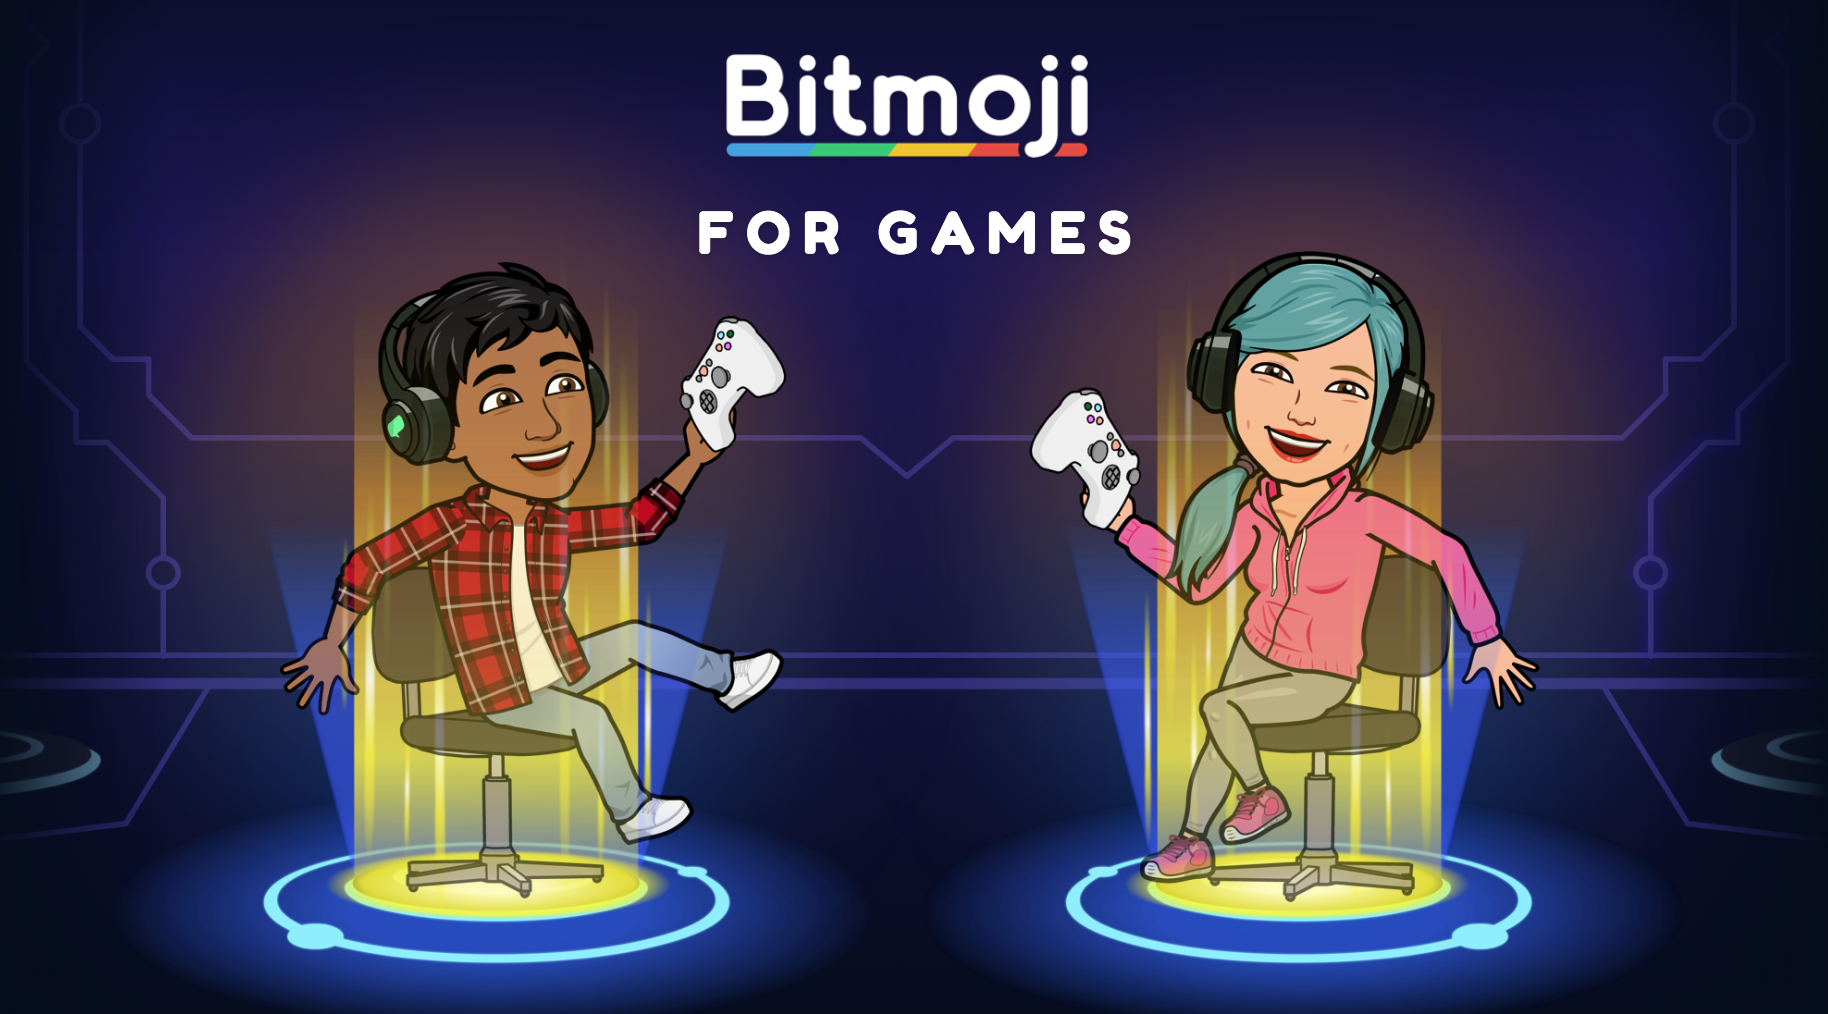 The Bitmoji Avatars which players will use in-game